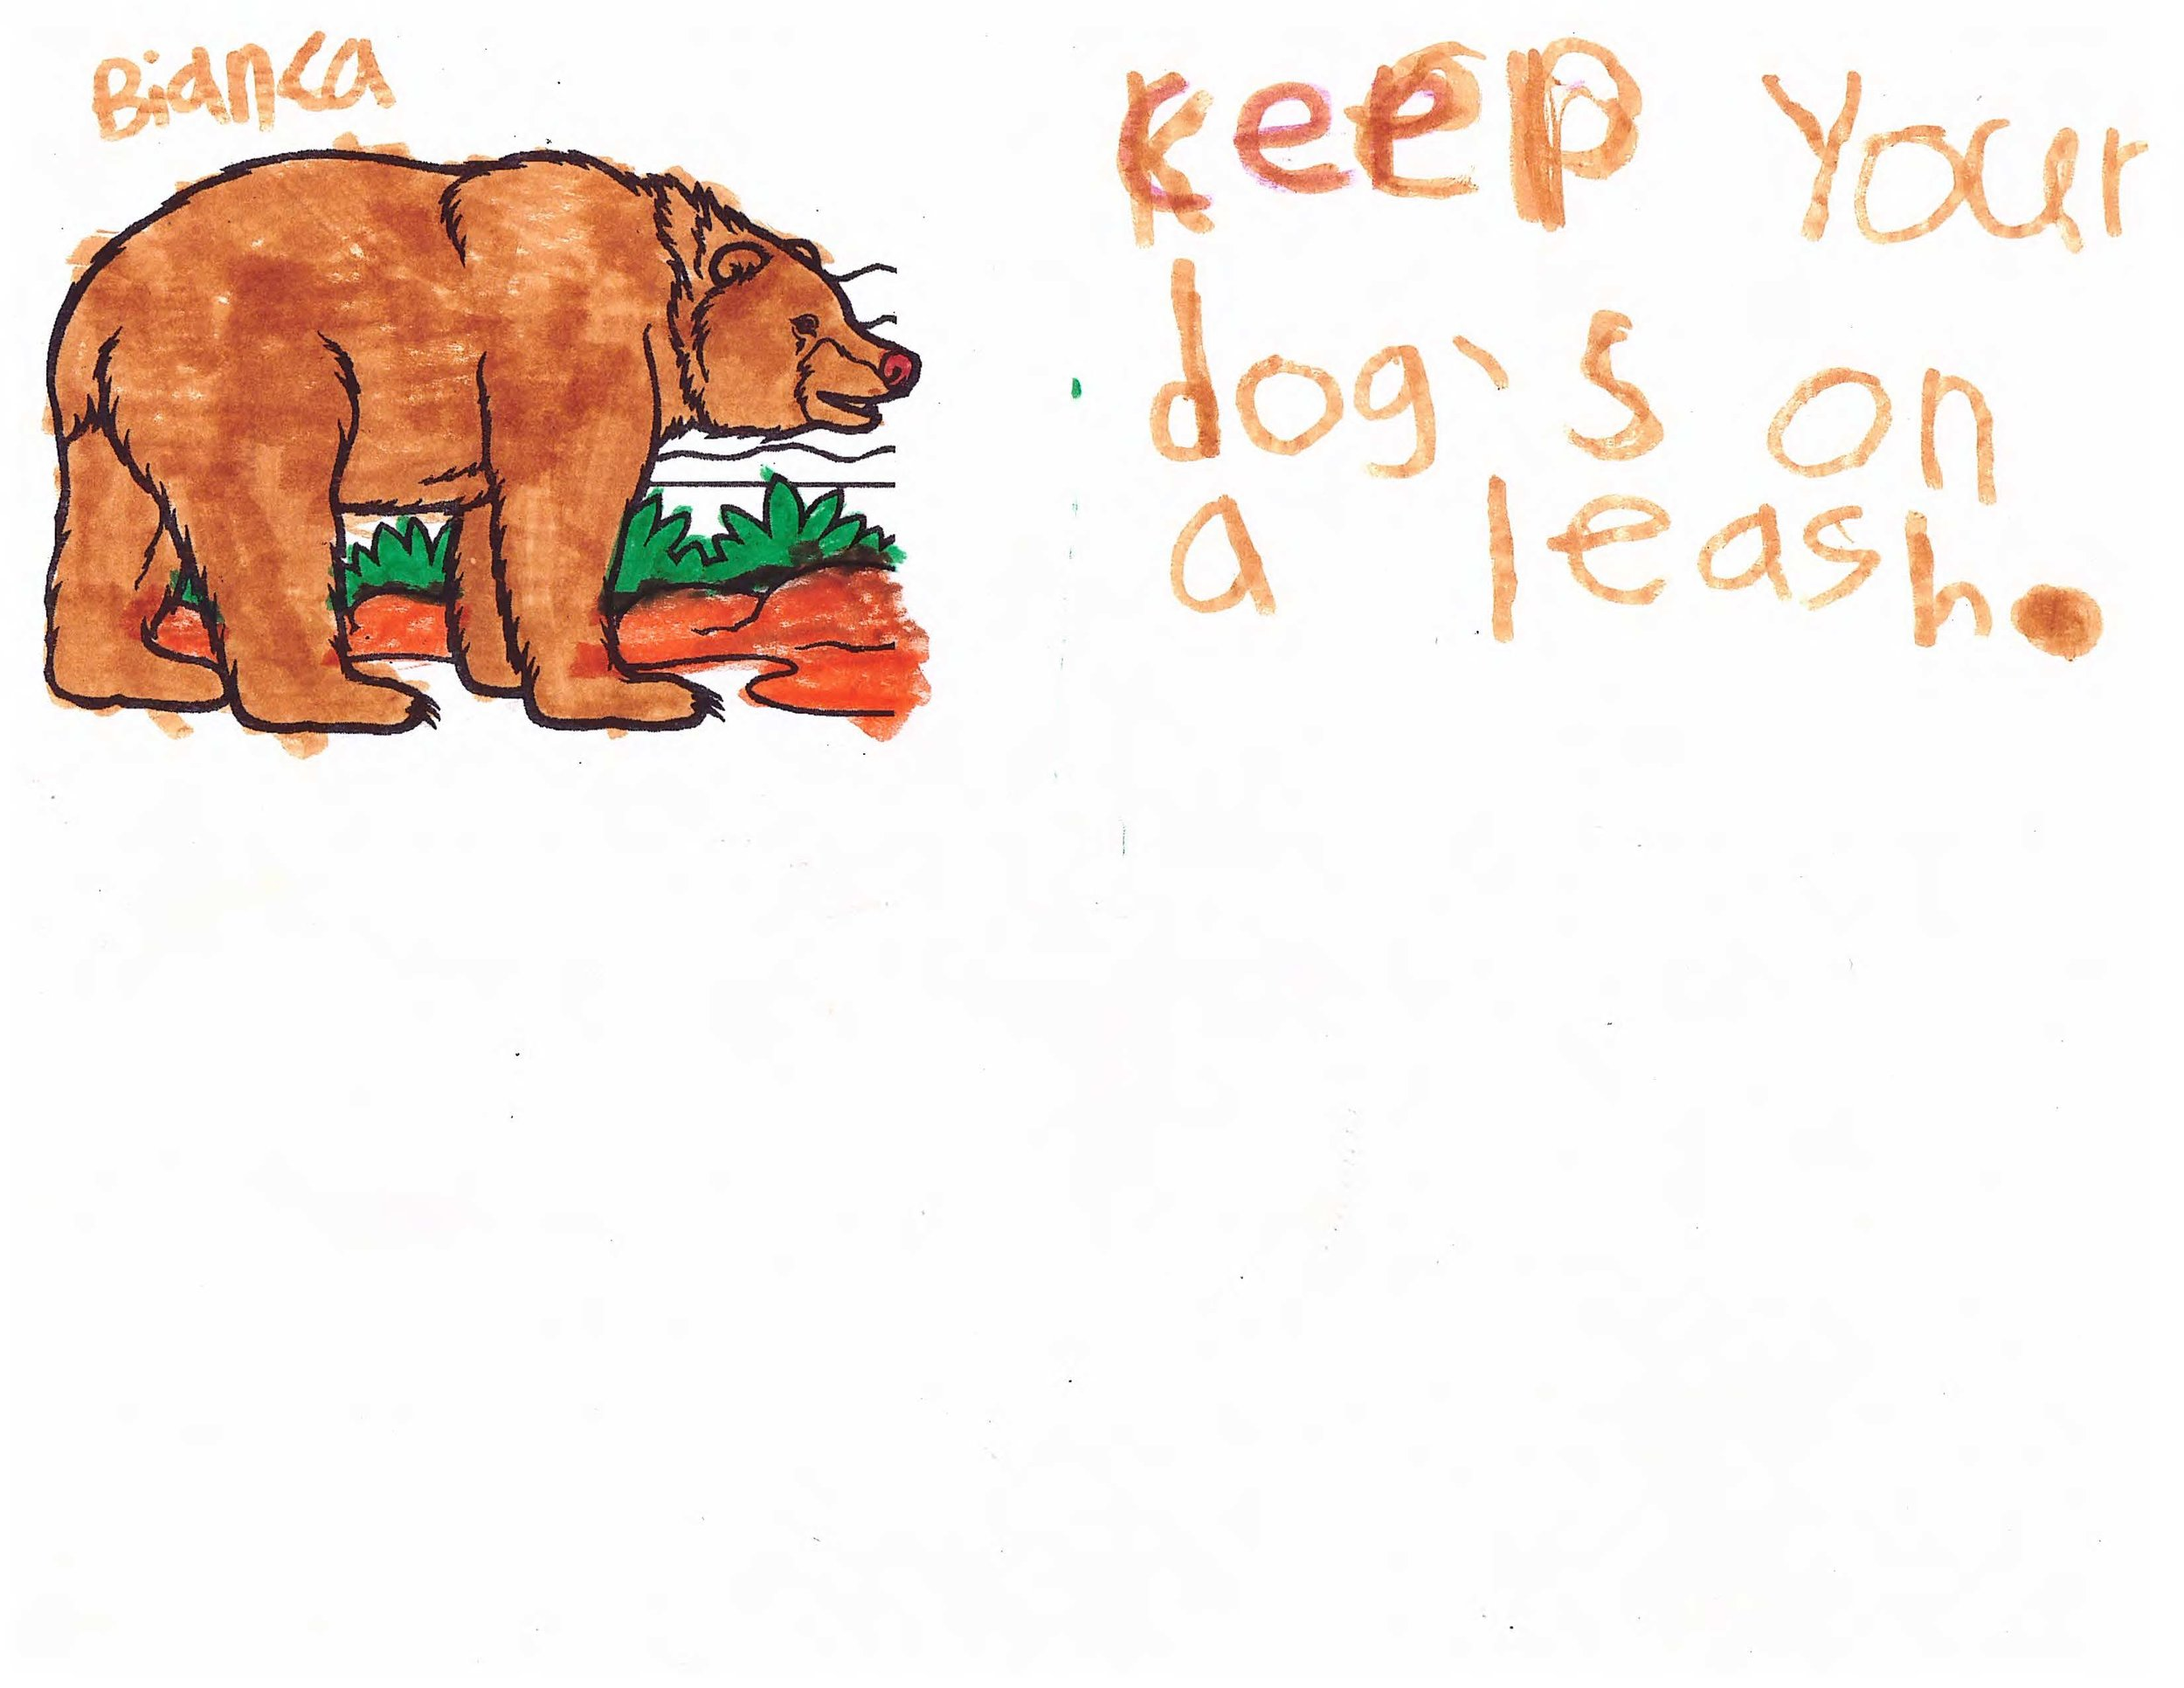 Bear Safety Message_Big Fun Camp_8-Aug-19 23.jpg